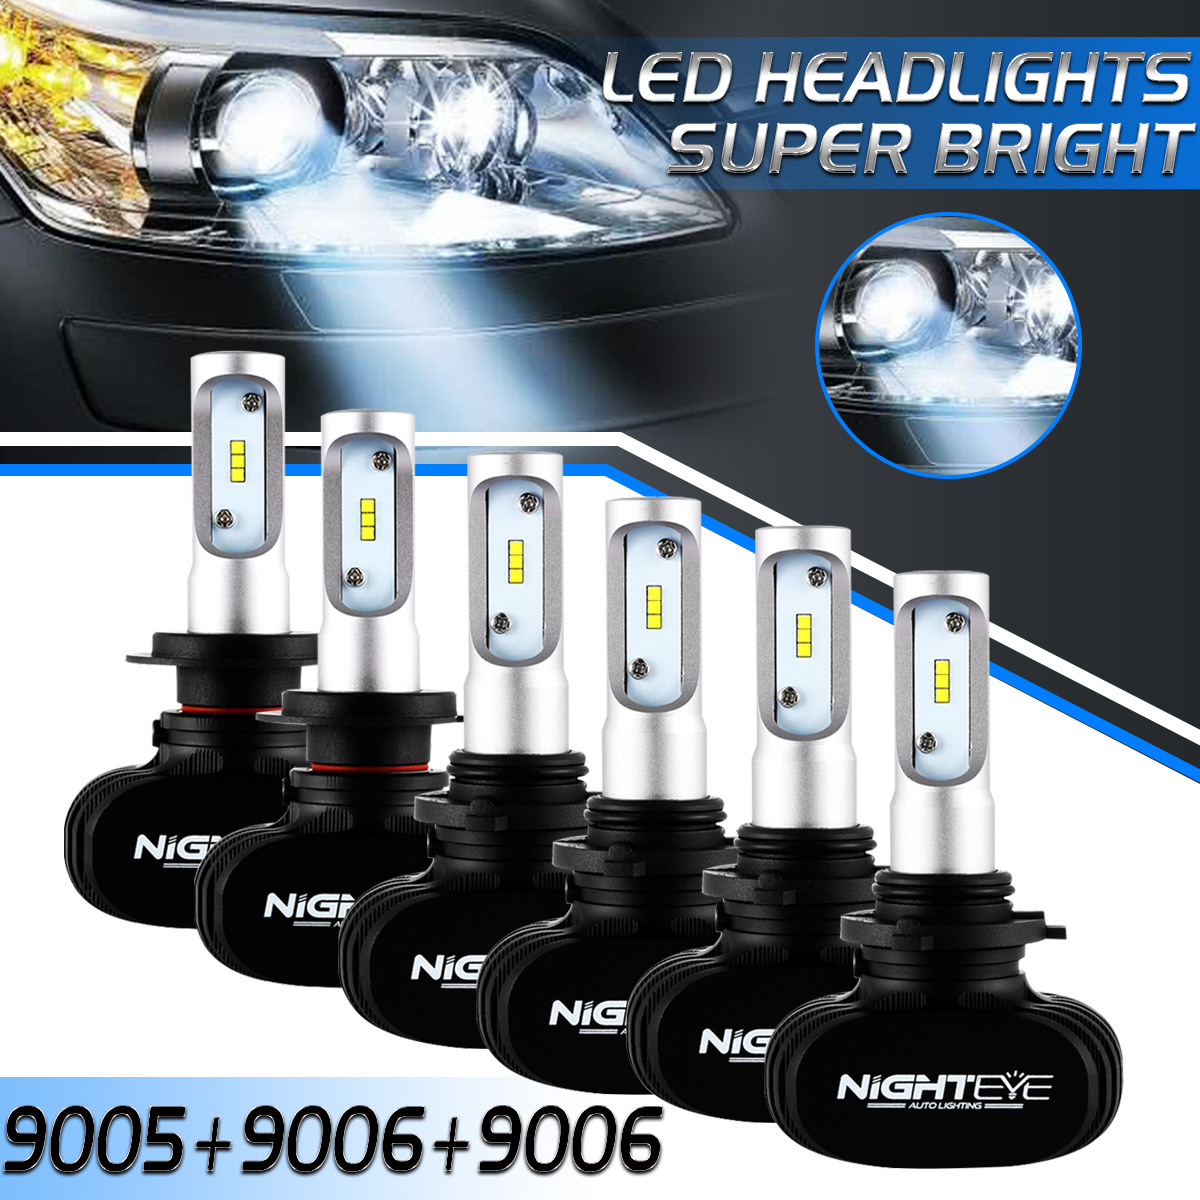 6pcs Combo 9005+9006+9006 Total 150W LED Headlight Fog For